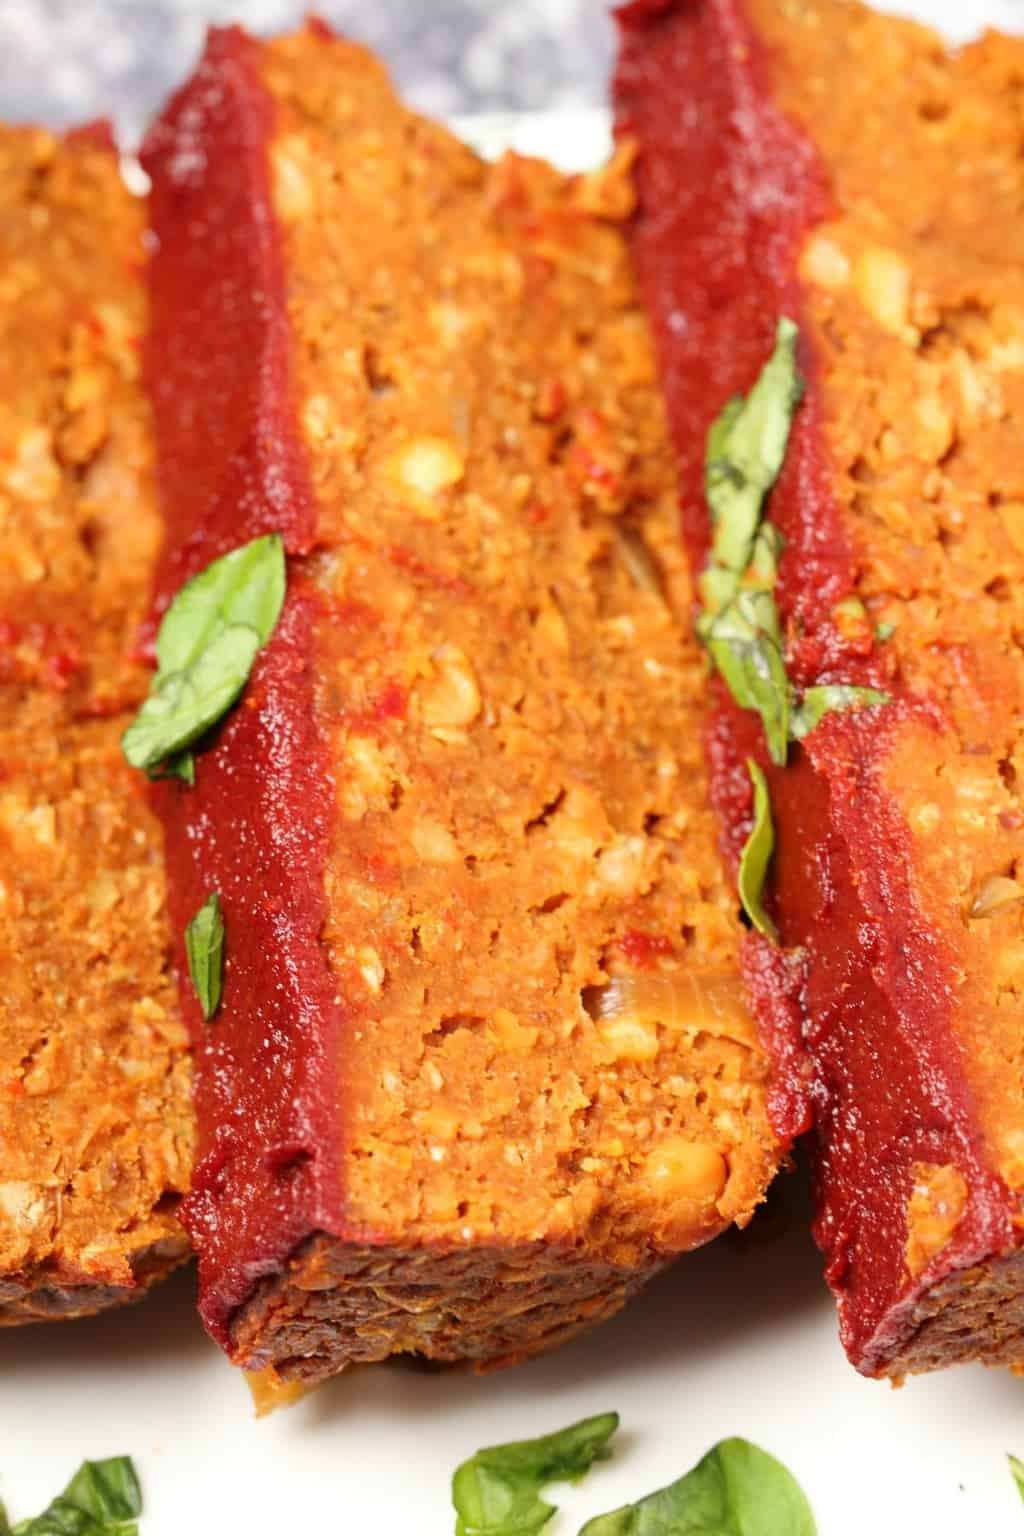 Vegan meatloaf slices on a white plate.